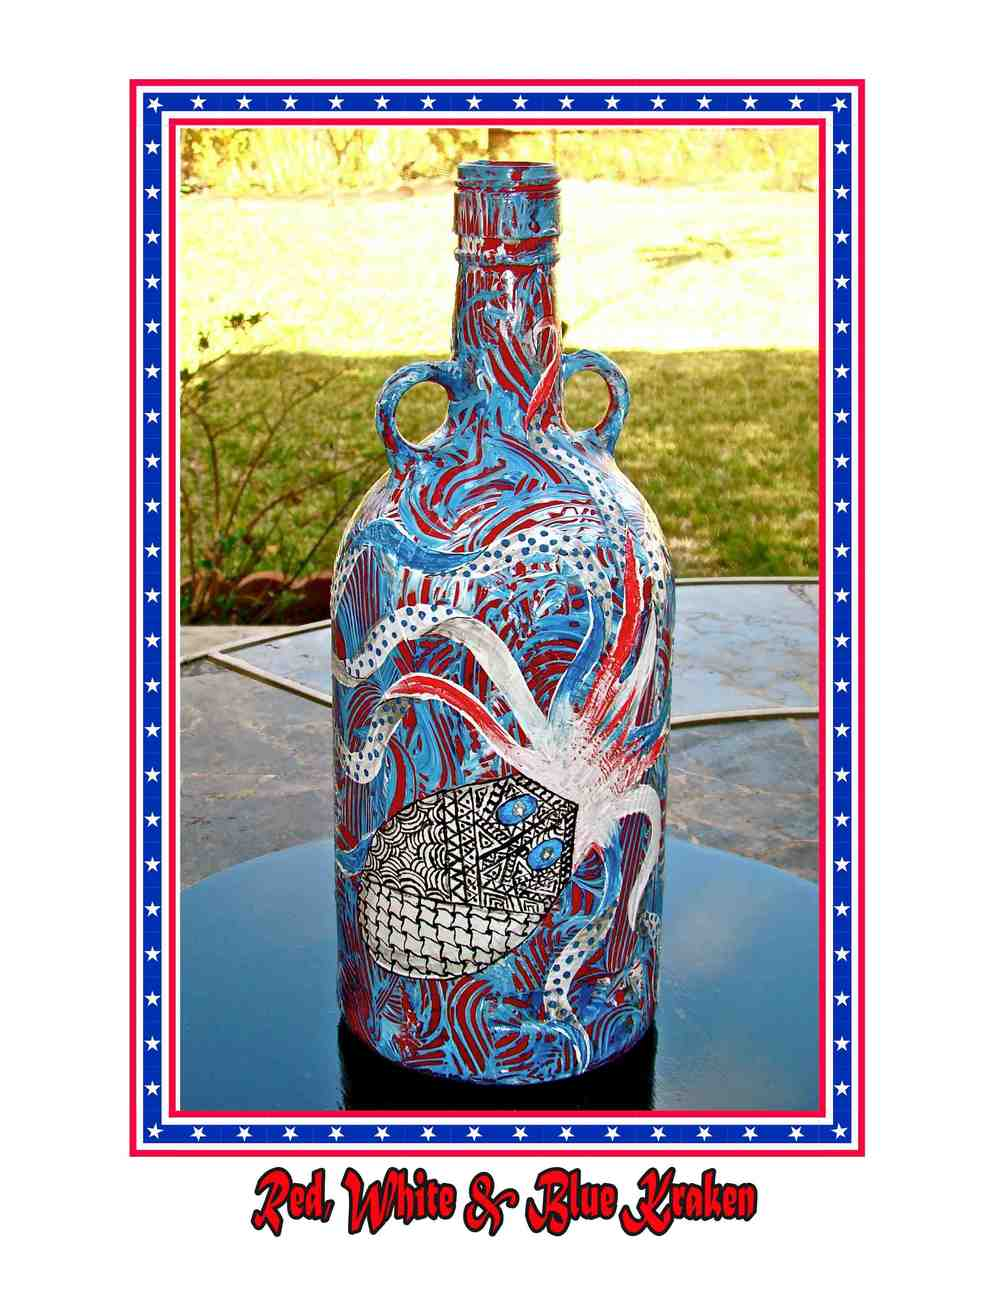 Red, White, & Blue Kraken